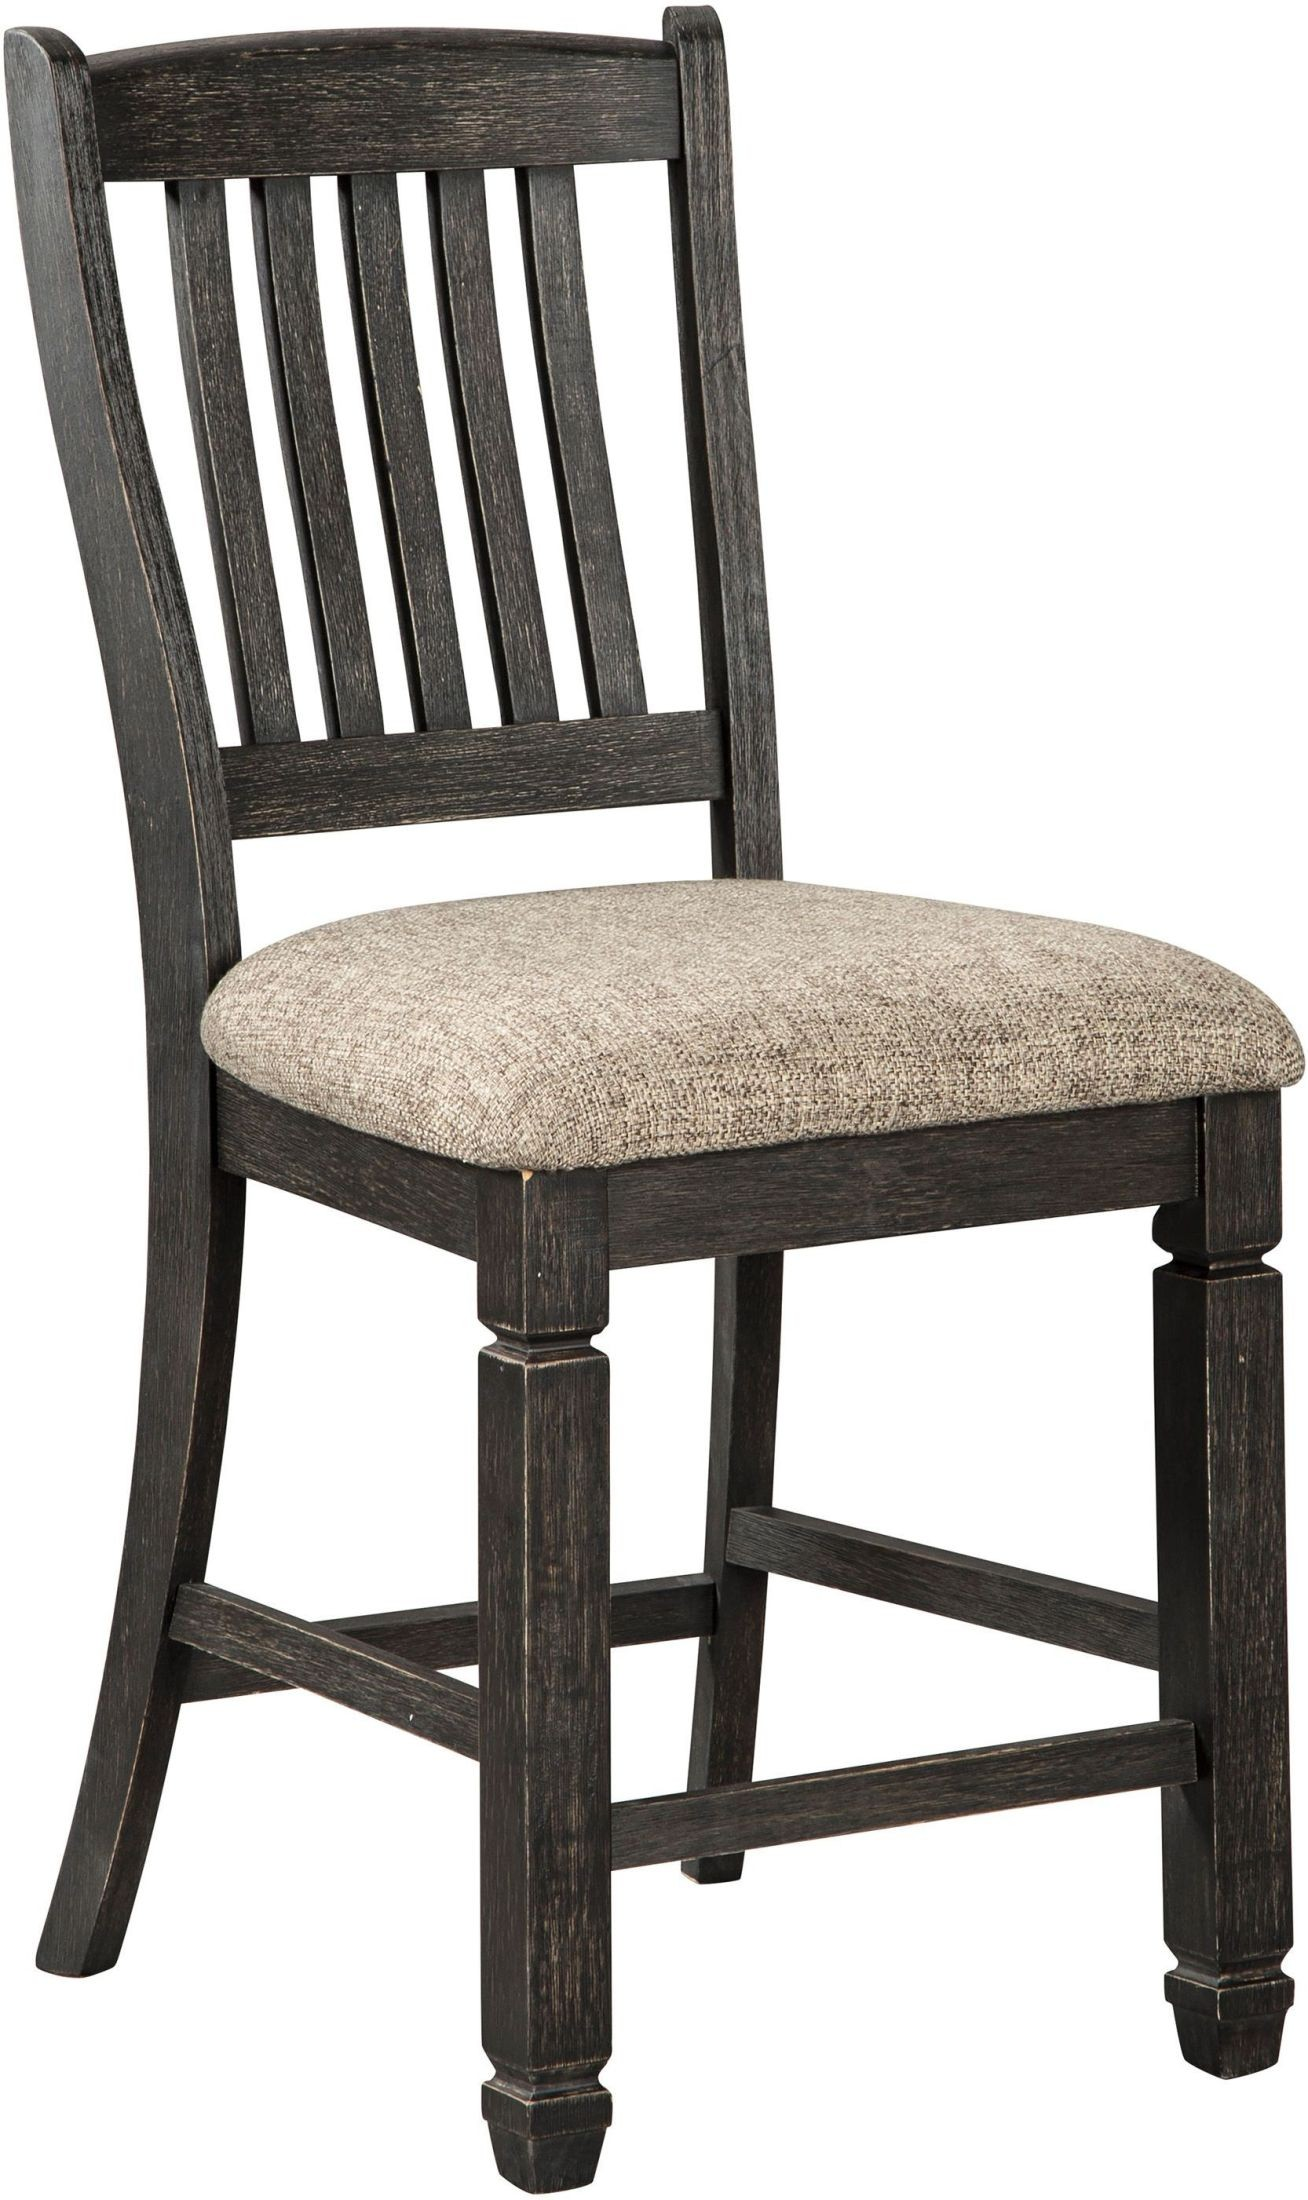 Tyler Creek Black And Gray Upholstered Barstool Set Of 2 From Ashley Coleman Furniture